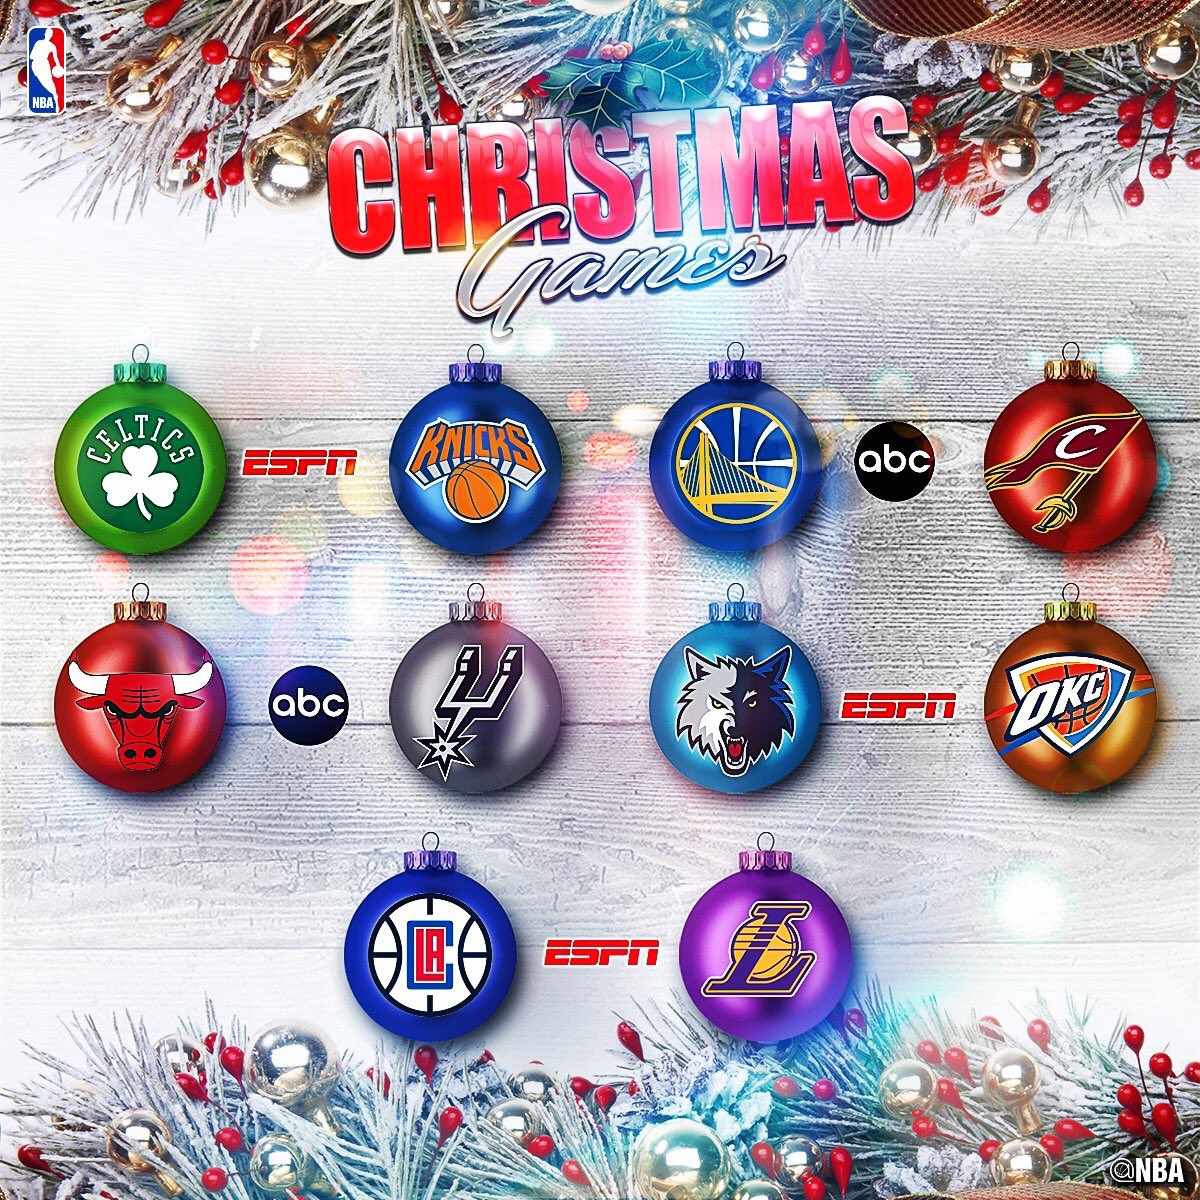 the 2016-2017 @nba schedule was released today! here is the complete